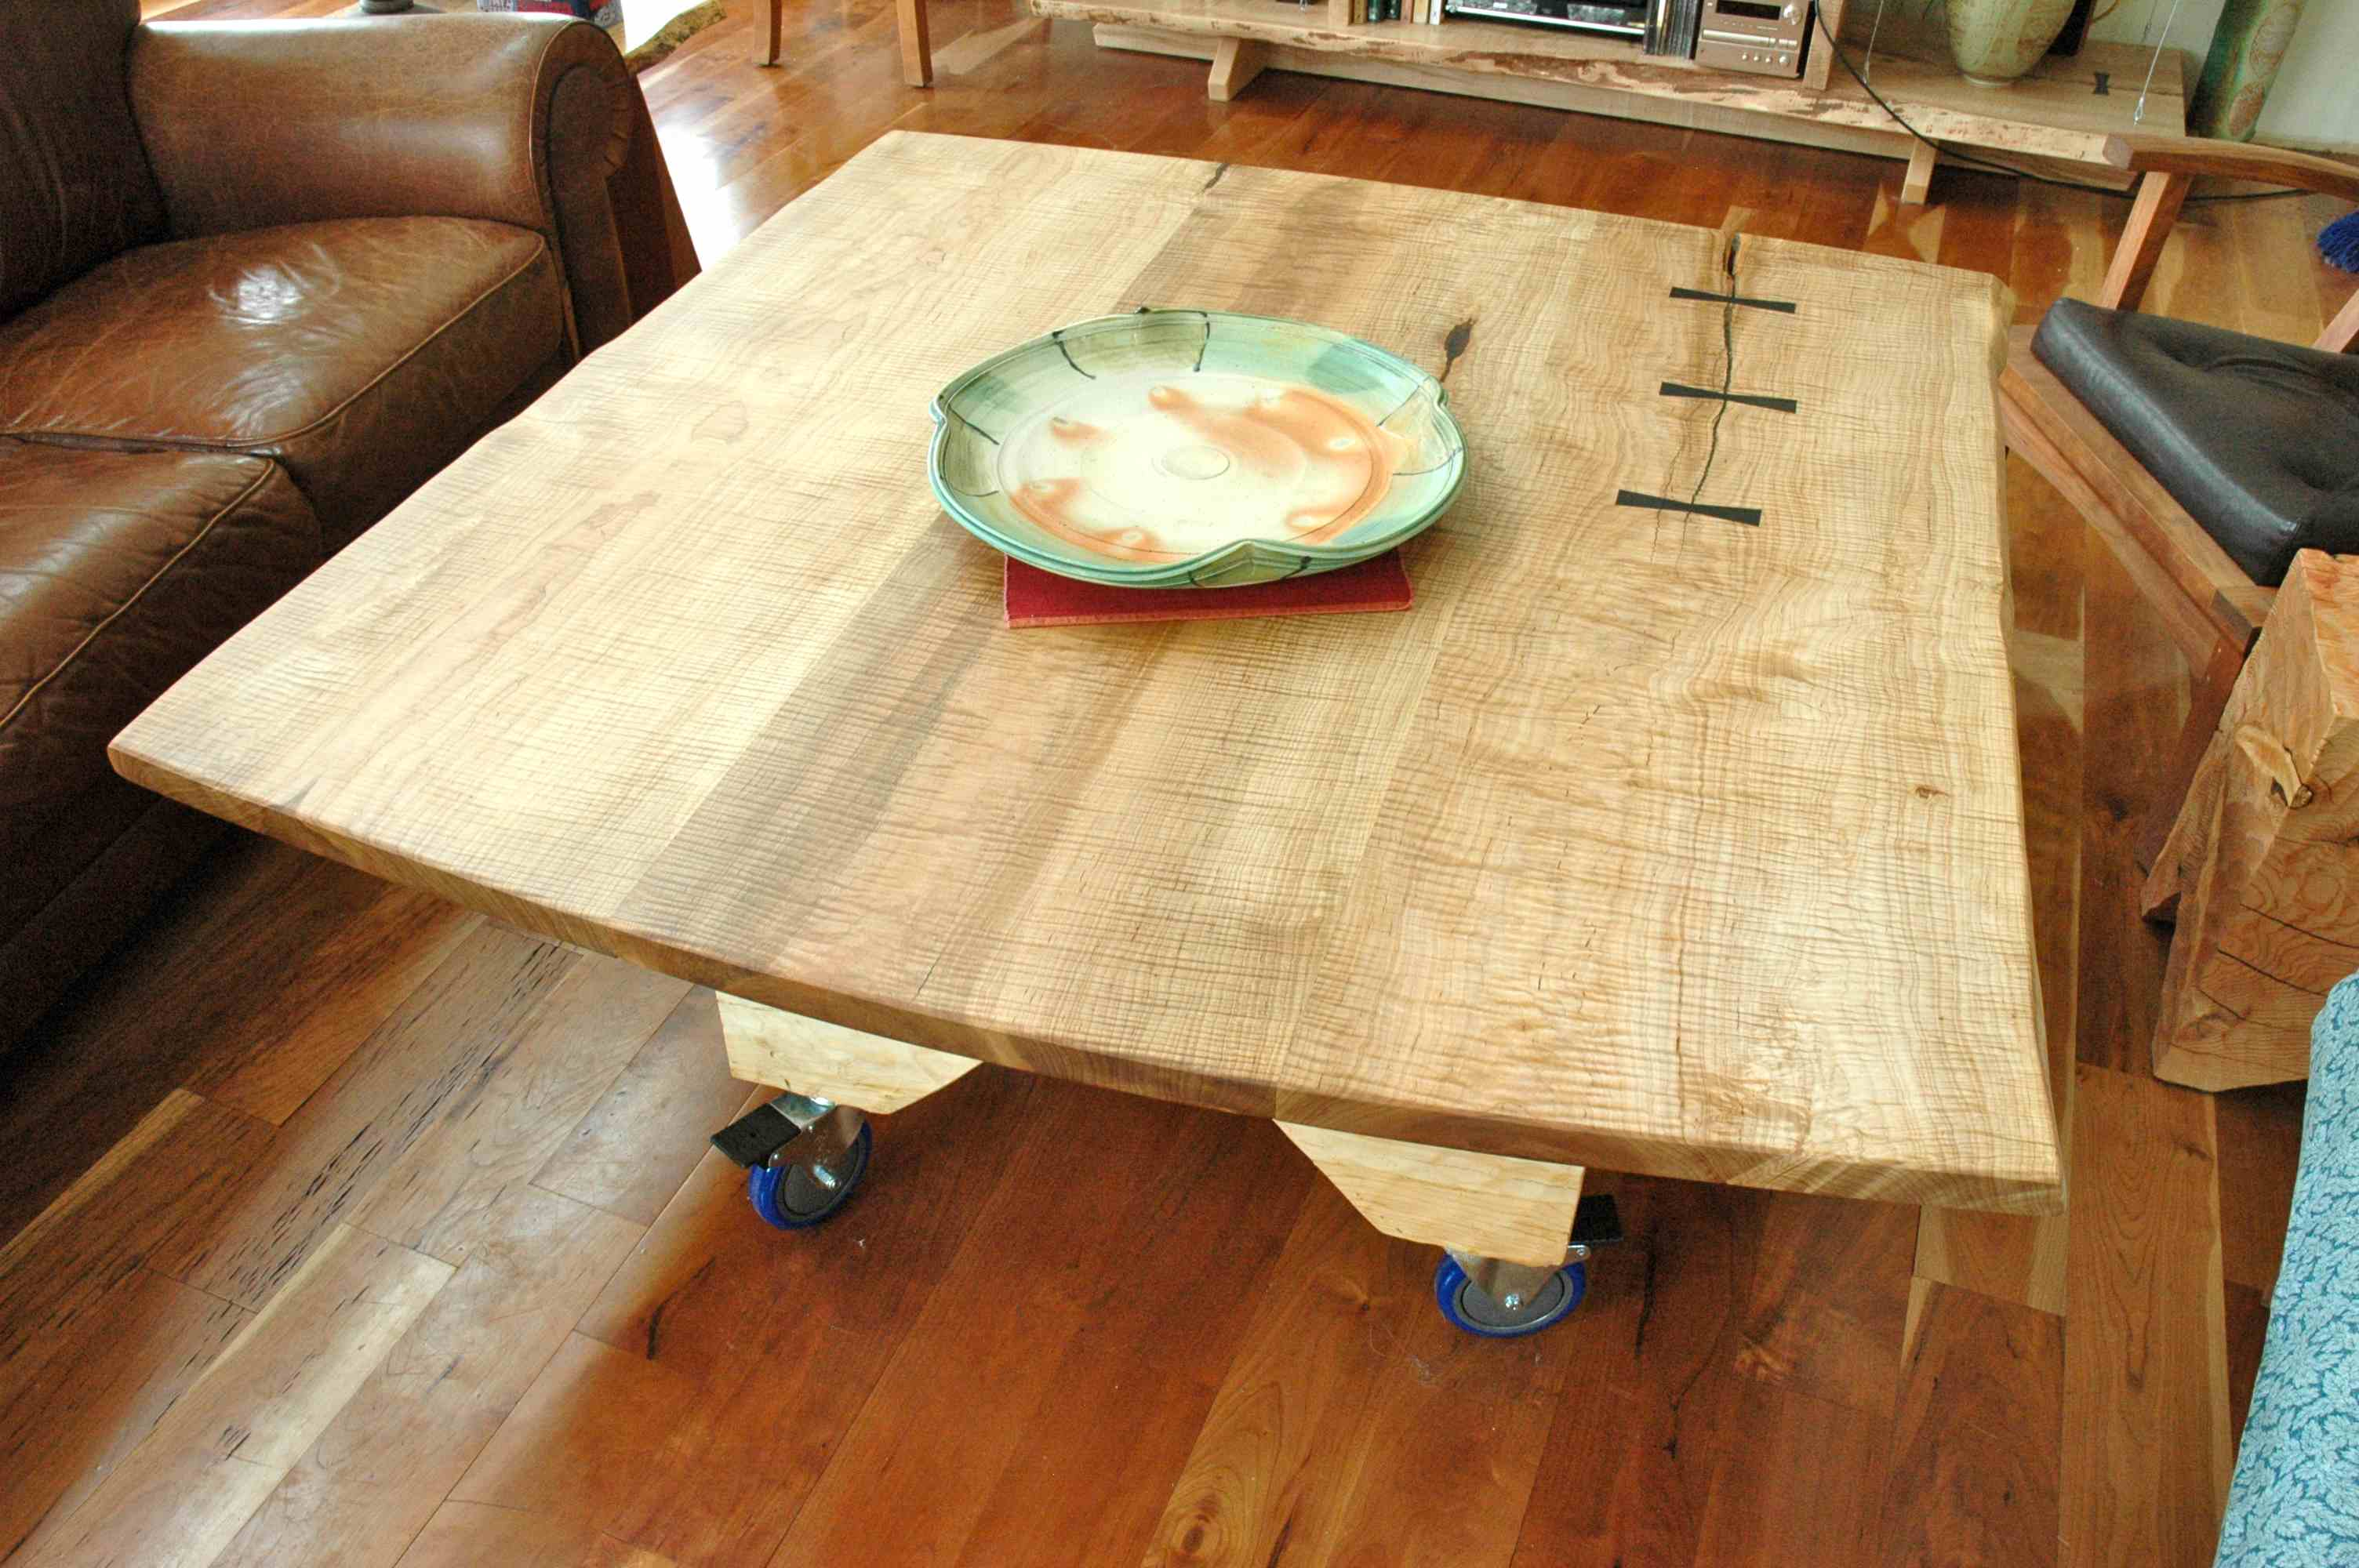 maple dining tables: handmadedumond's custom wood furniture